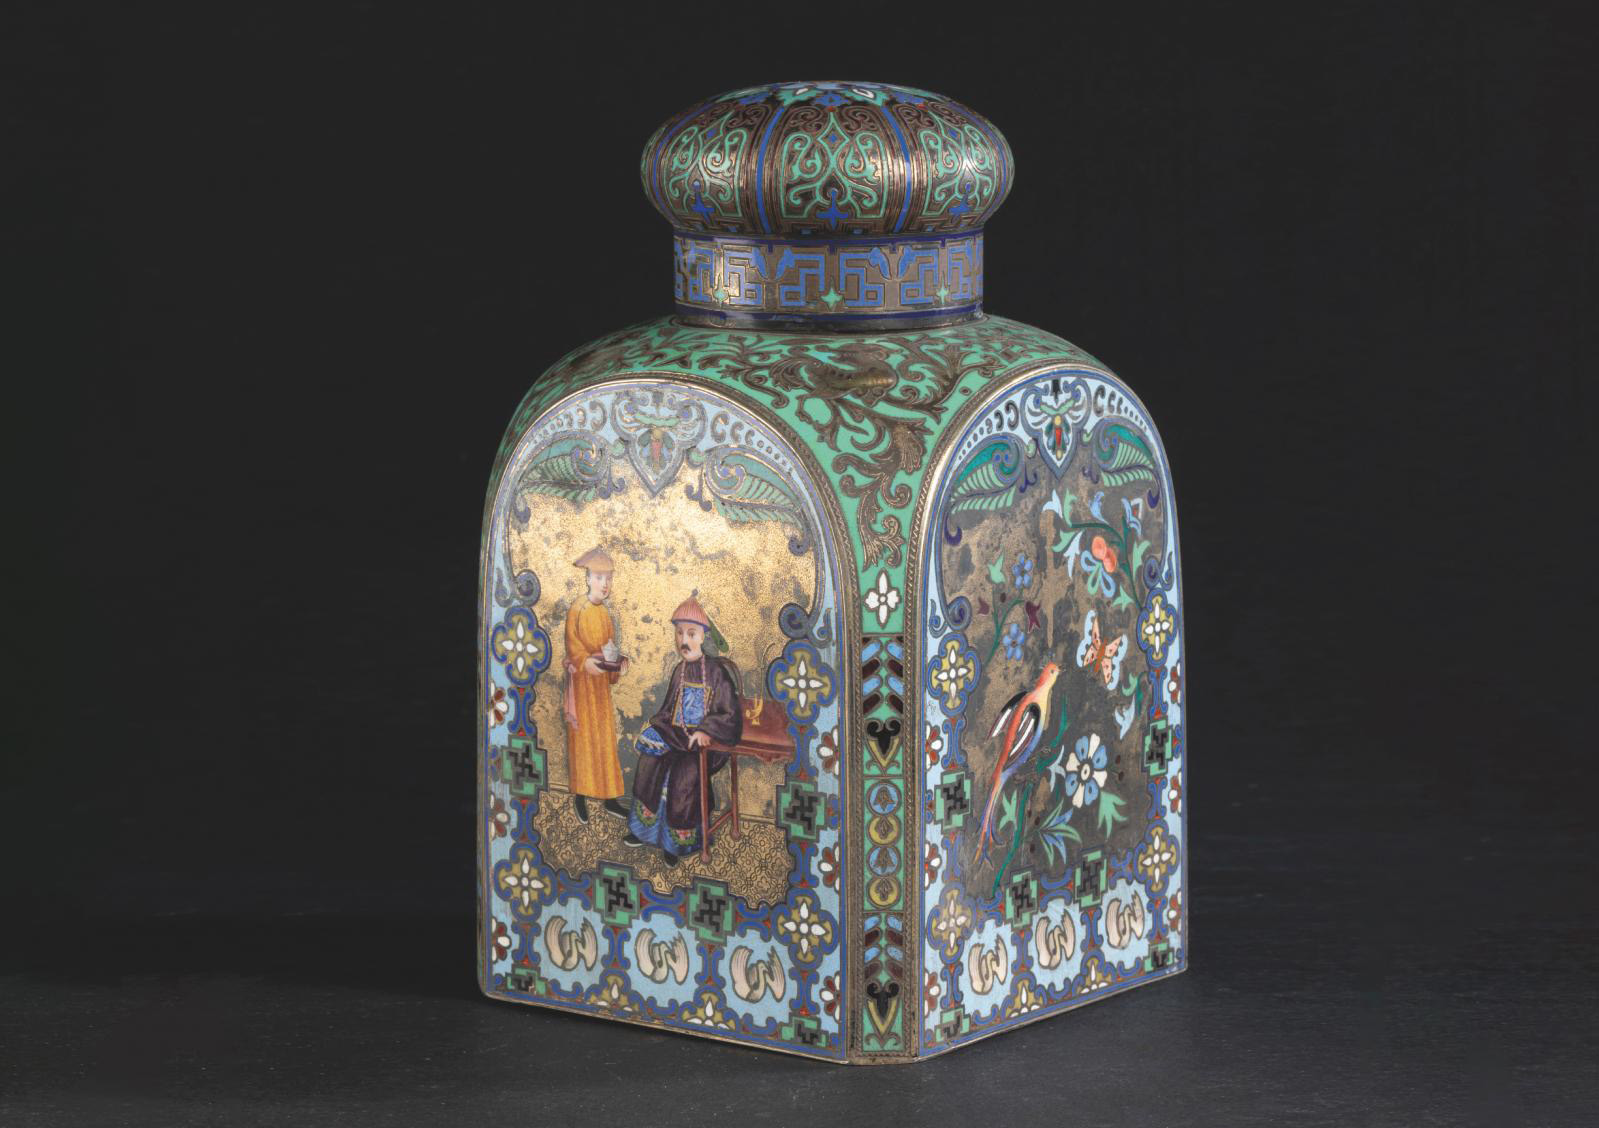 """Pavel Ovchinnikov (1830-1888), Moscow, 1883, square tea box with canted corners, decorated with champlevé polychrome enamel on vermeil depicting Chinese dignitaries, birds, swastikas, palmettes, swans and stylized phoenixes; """"88 zolotniks"""" (916.6 millesimal fineness) and """"Pavel Ovtchinnikov"""" marks, 14 x 9 x 9 cm/5.5 x 3.5 x 3.5 in, gross weight 569 g/20.07 oz. Result: €25,760"""